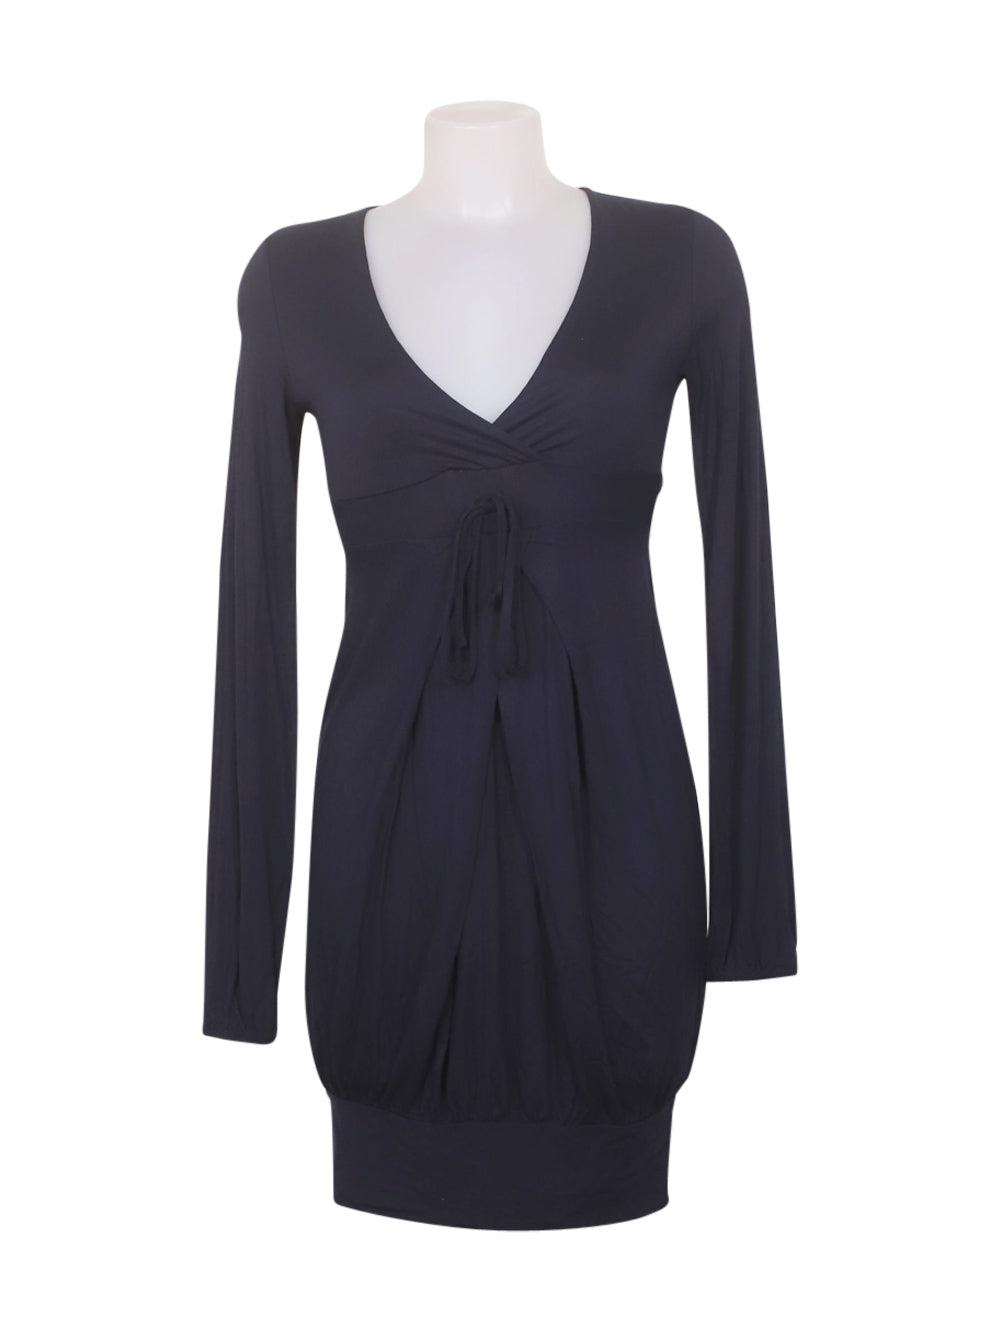 Front photo of Preloved Intimissimi Blue Woman's dress - size 8/S